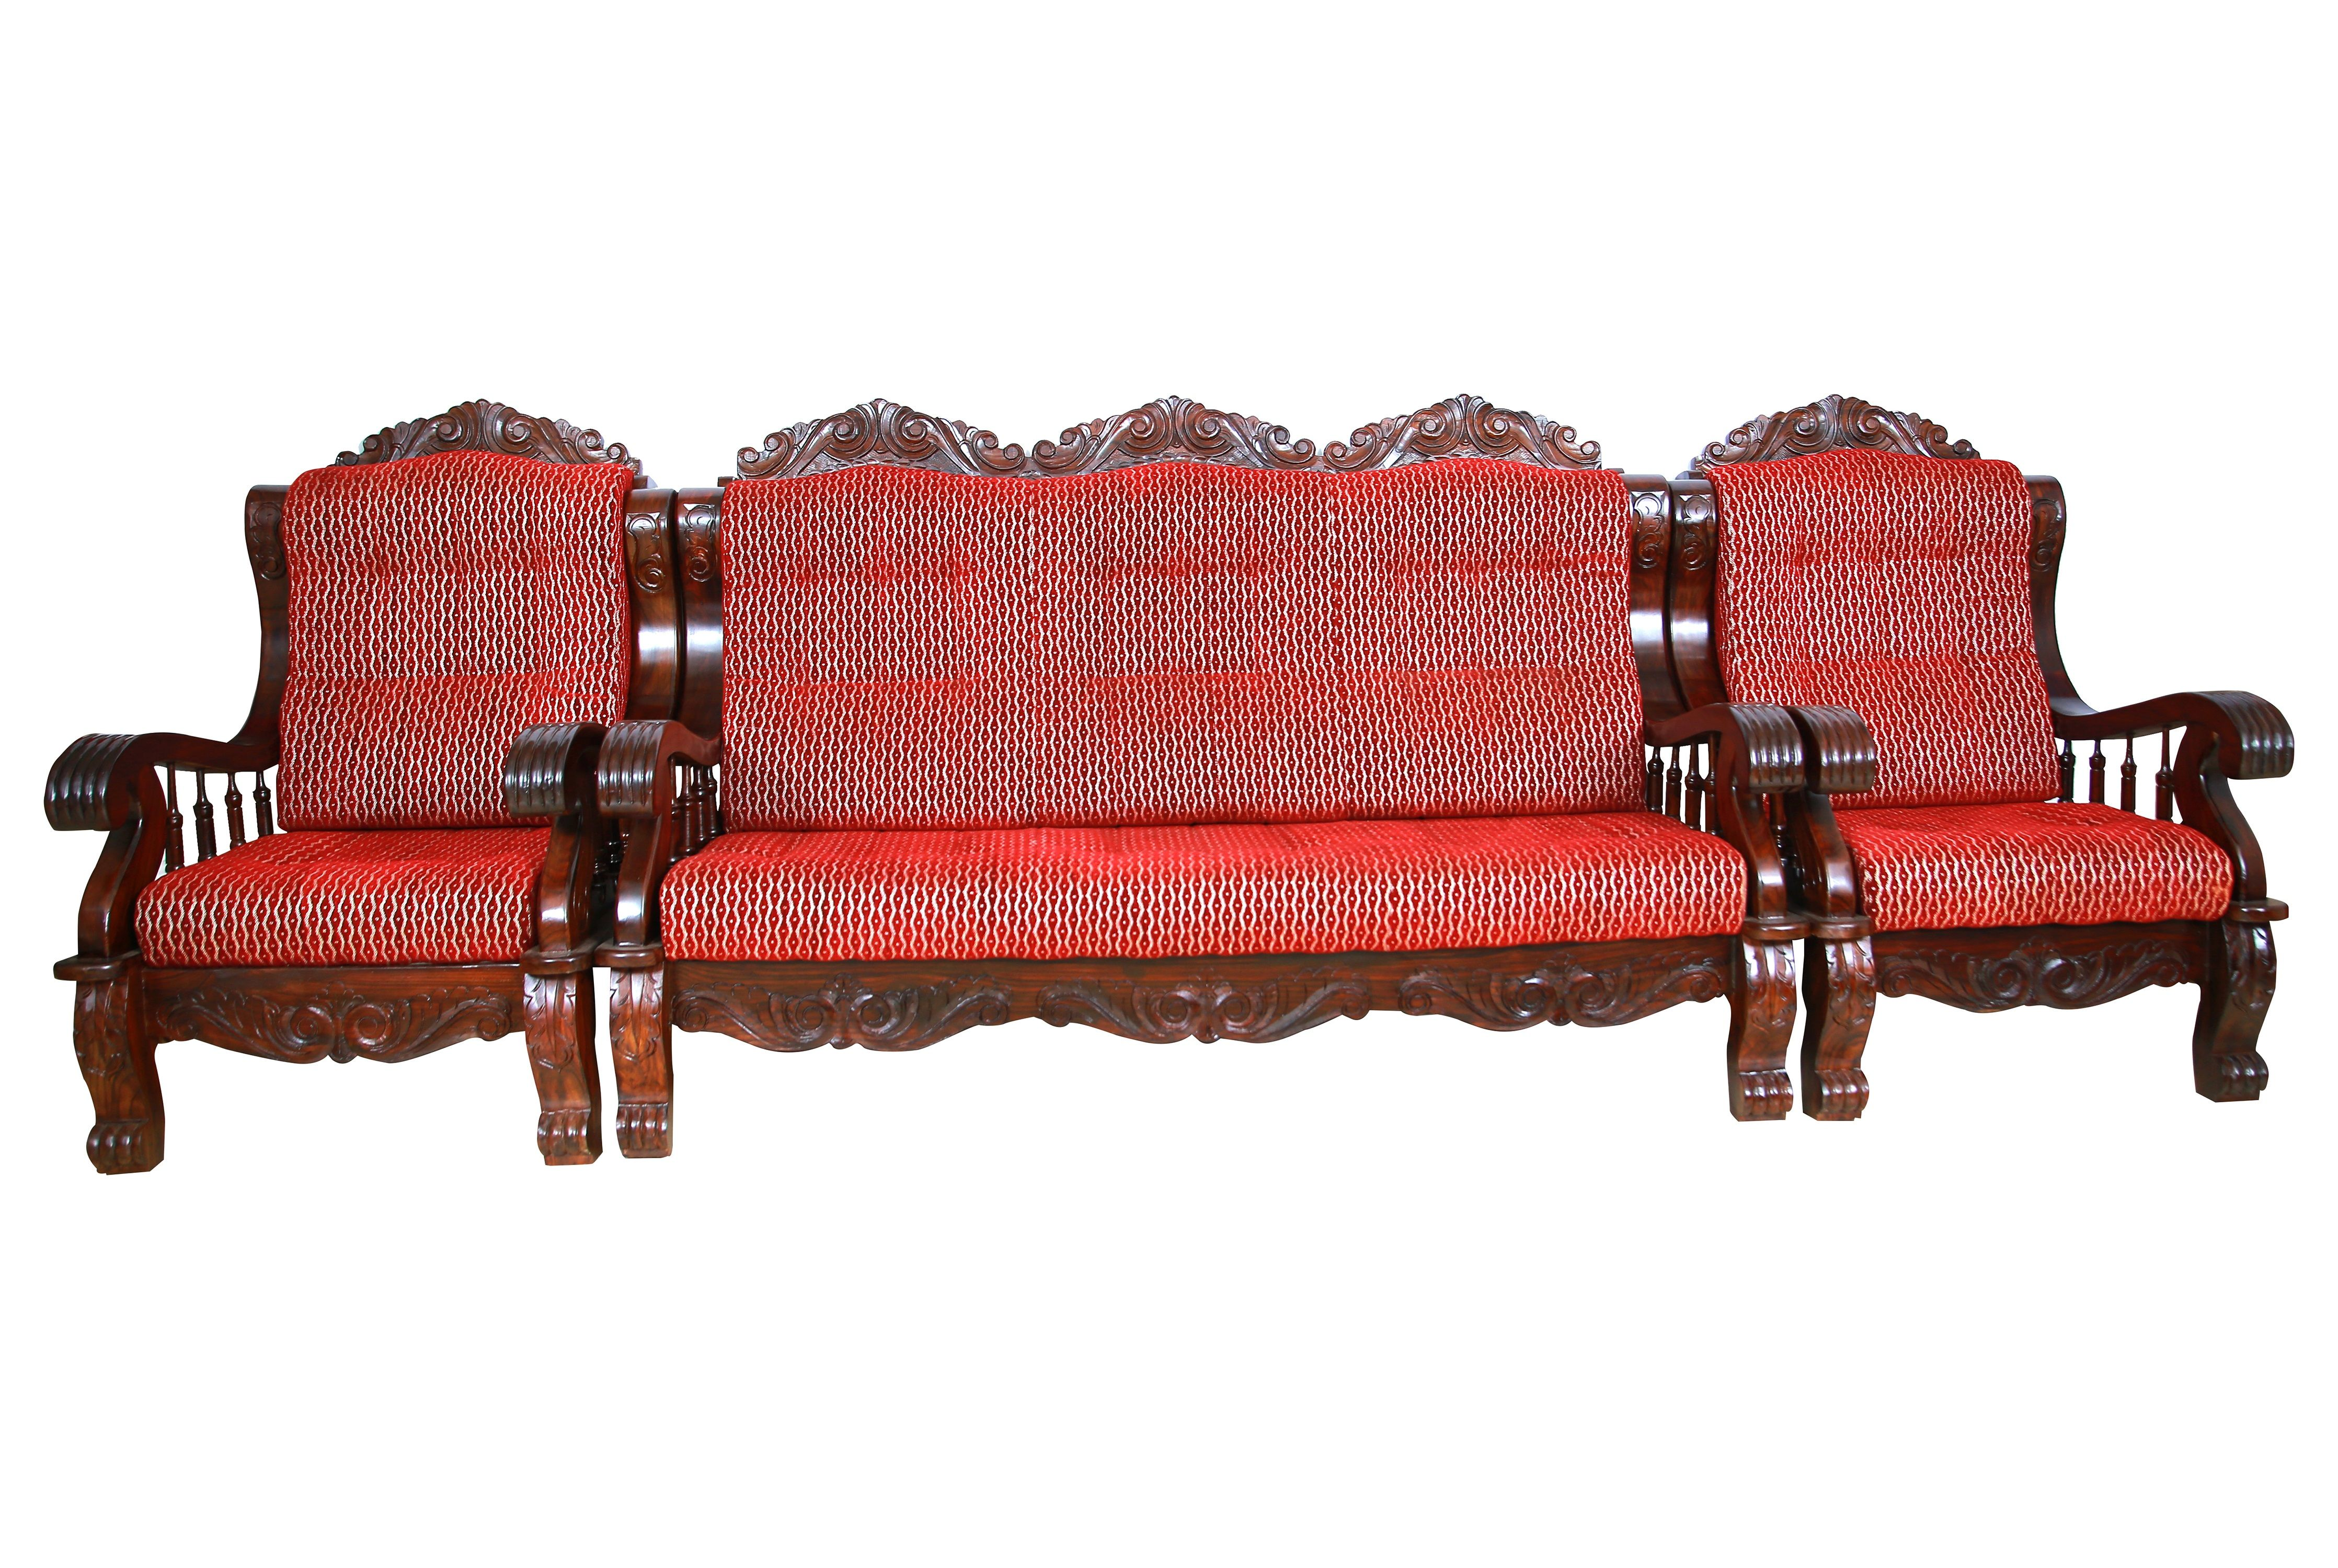 Jaipur Rosewood 3 Seater Sofa Wooden Sofa Set Wooden Sofa Set Designs Iron Door Design